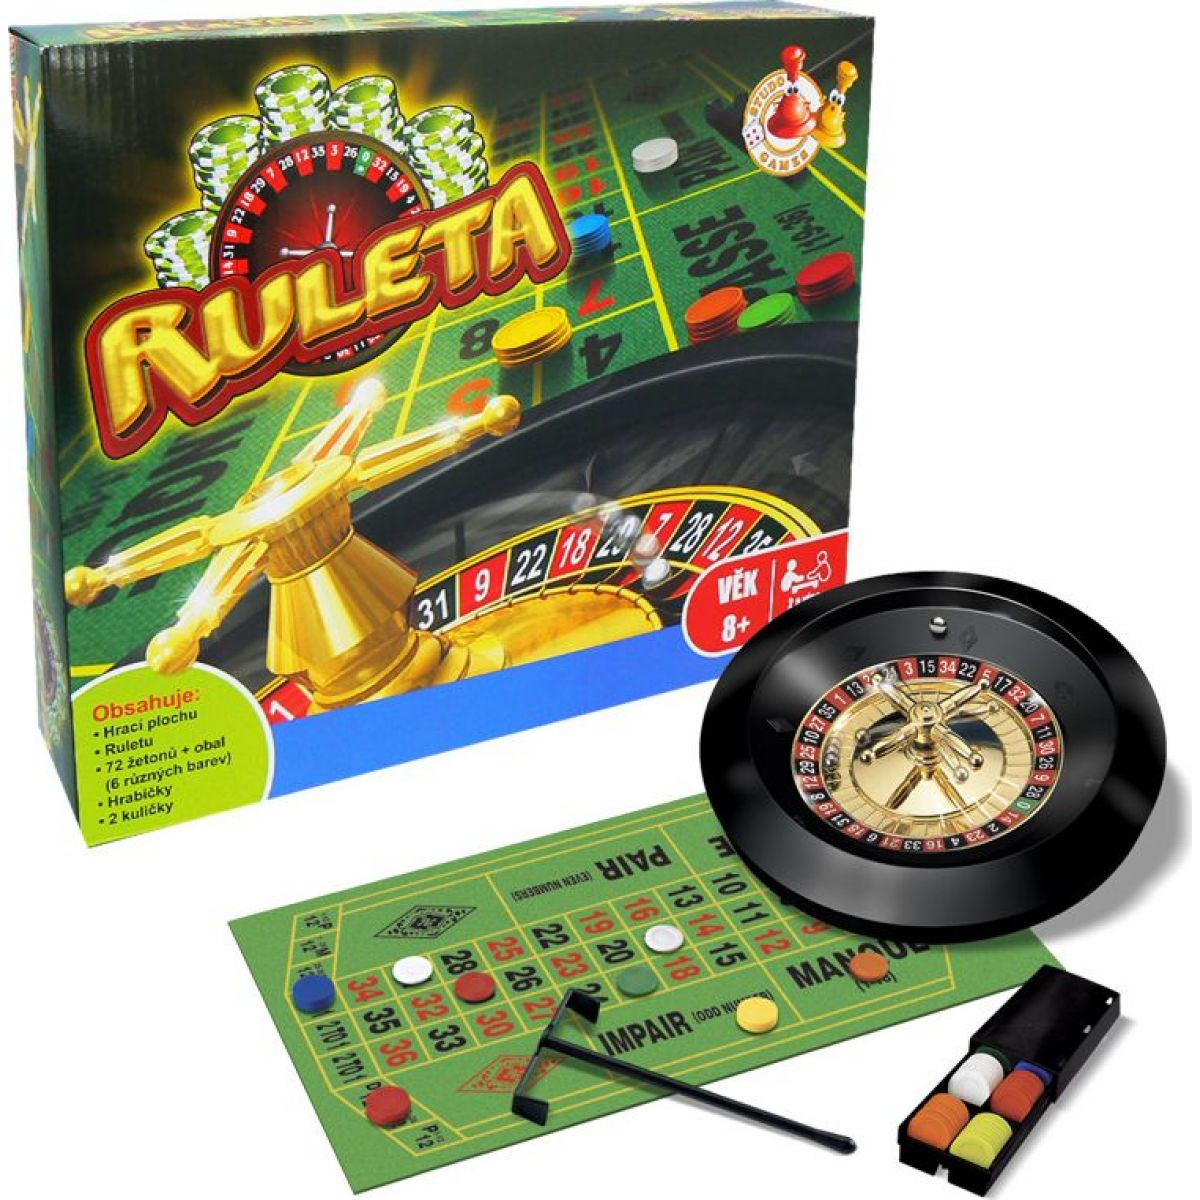 HM Studio Ruleta set